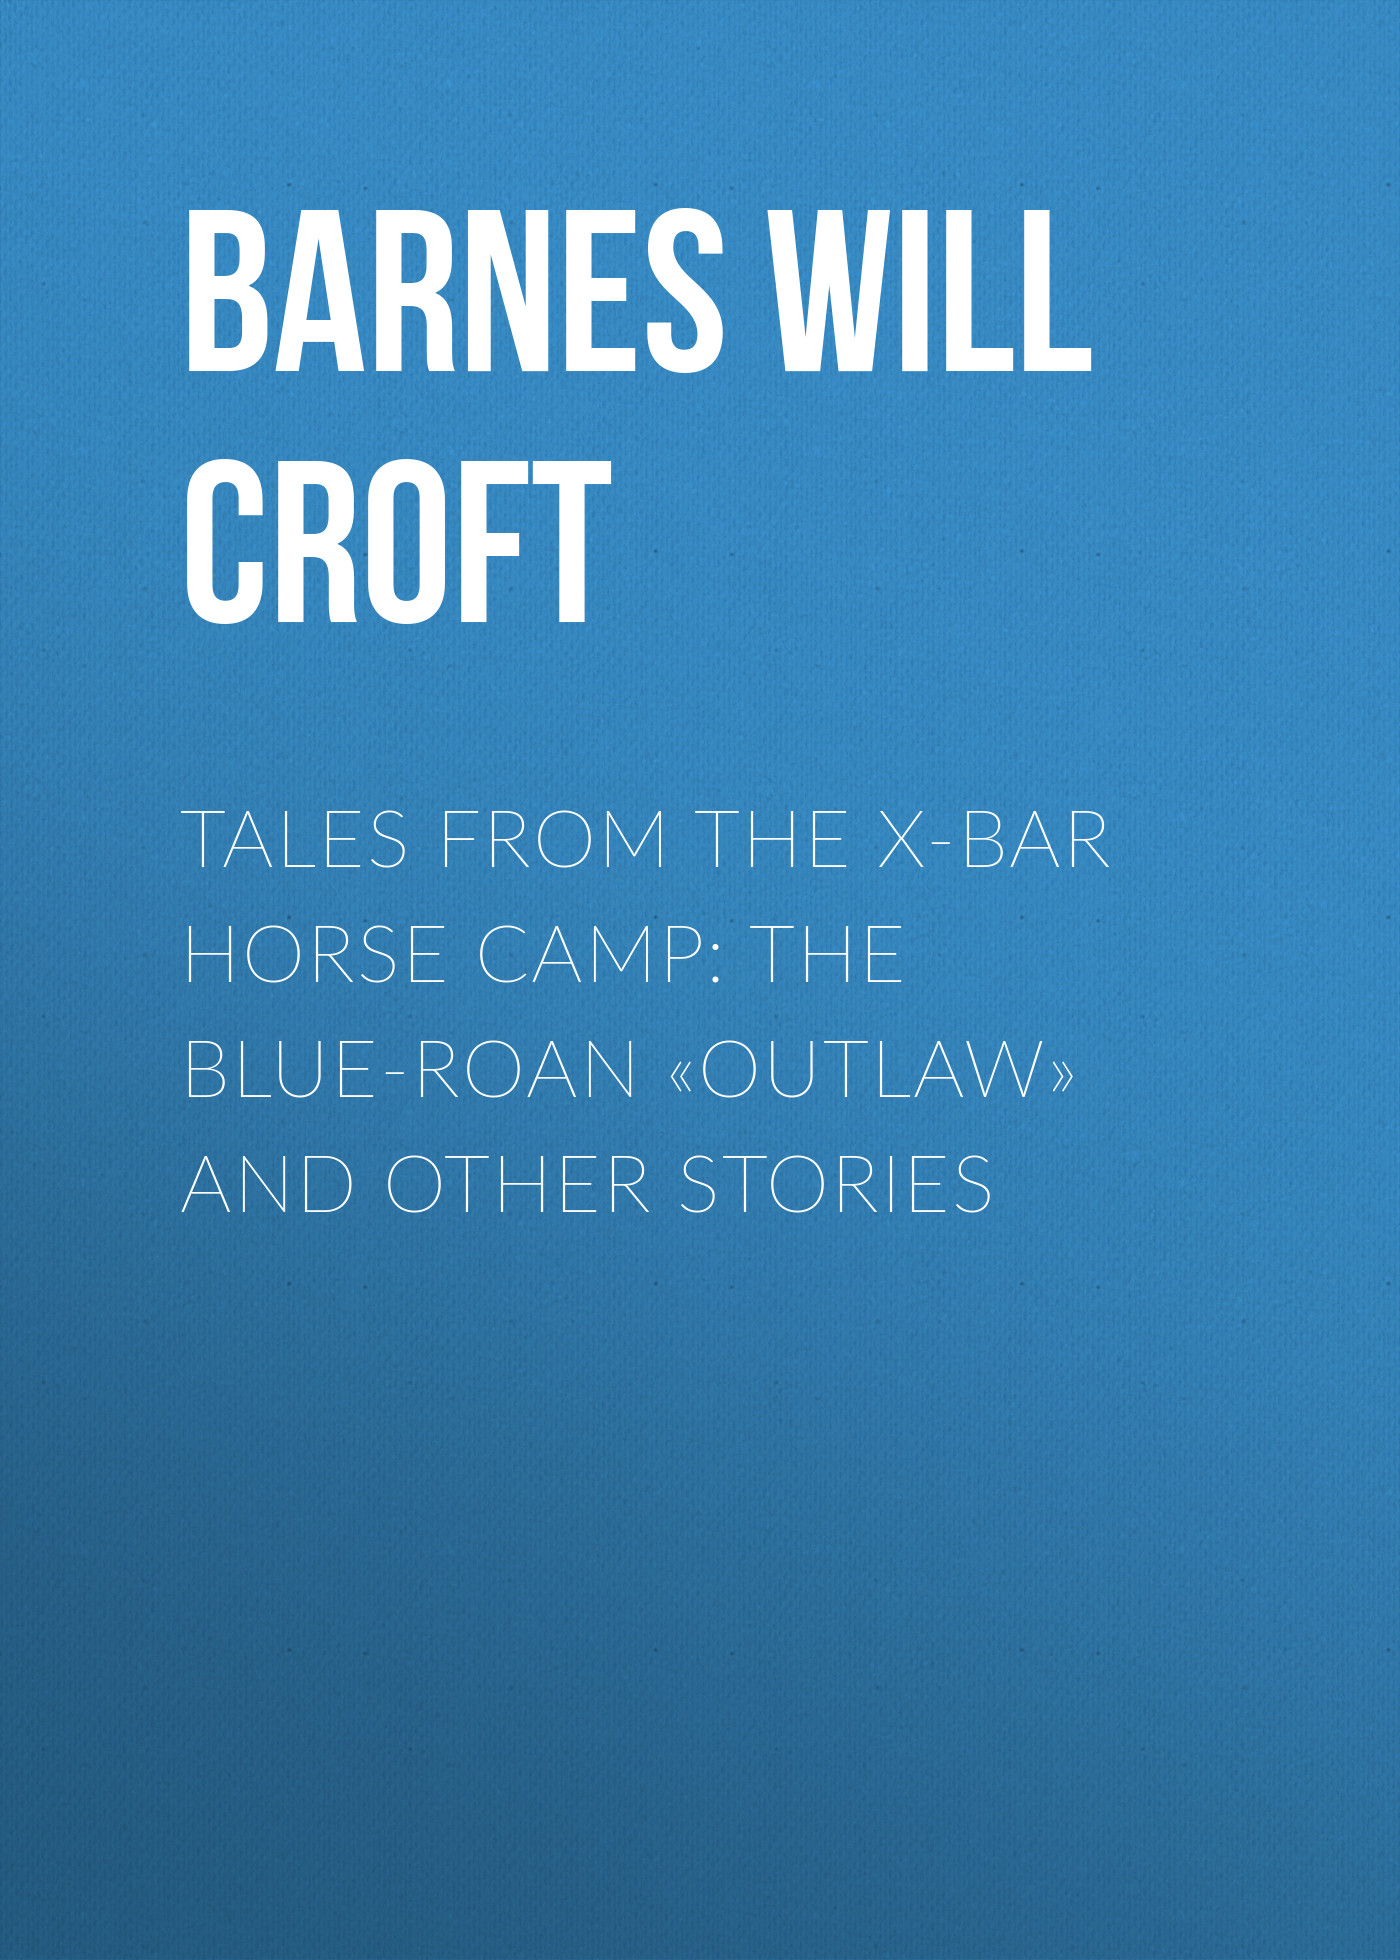 Barnes Will Croft Tales from the X-bar Horse Camp: The Blue-Roan «Outlaw» and Other Stories